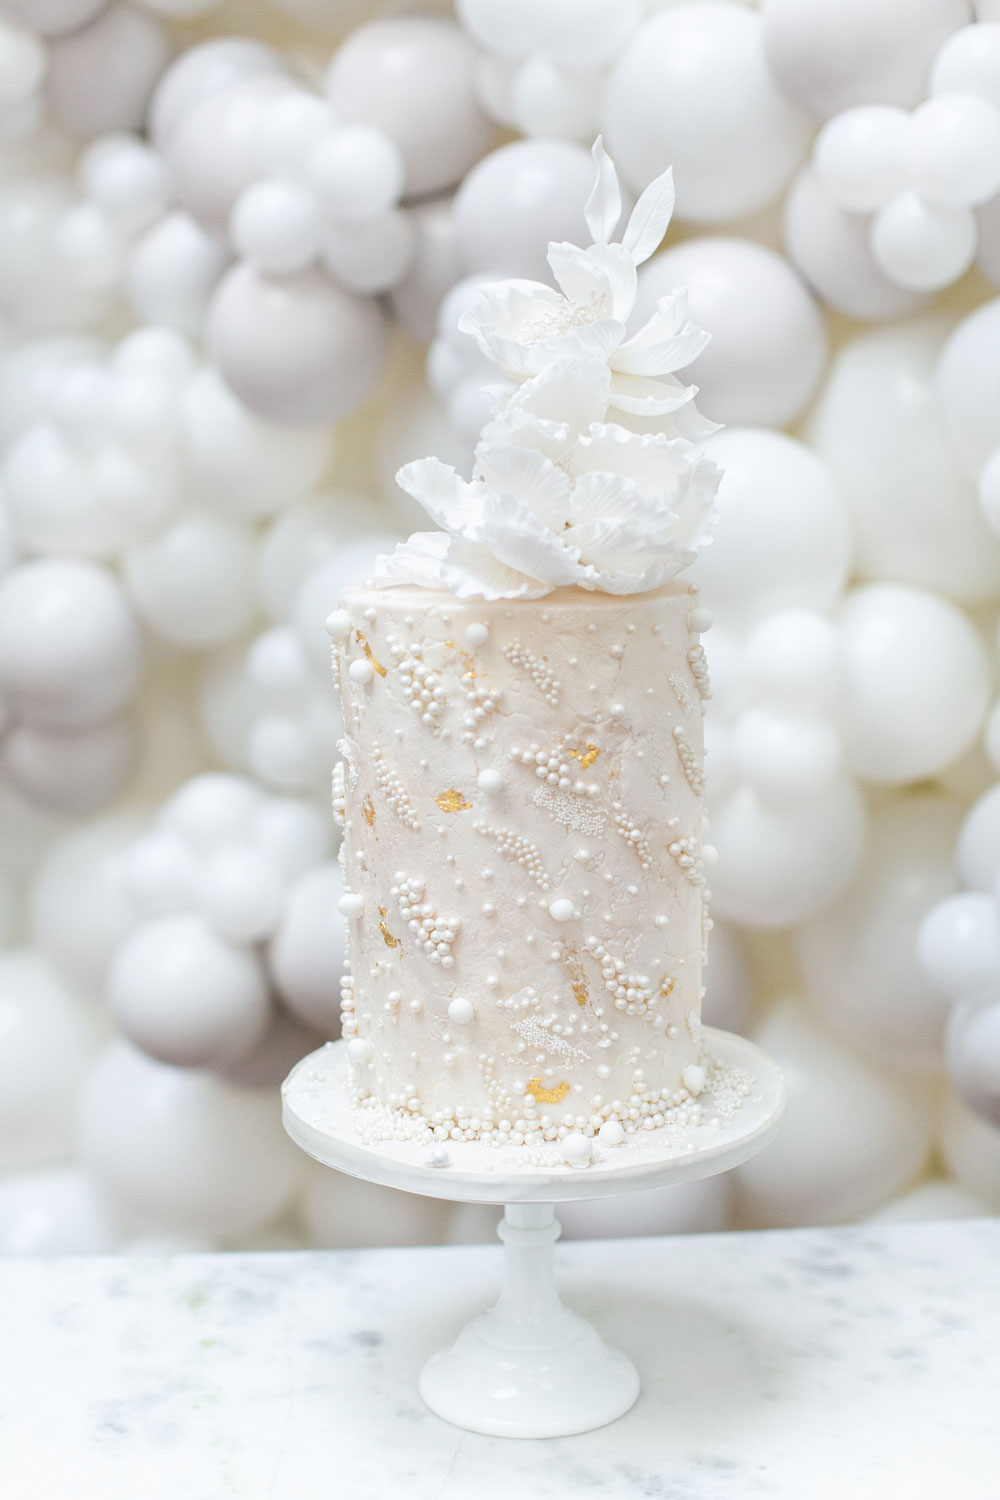 pearl-luxury-wedding-cake1-by-elizabeths-cake-emporium-1